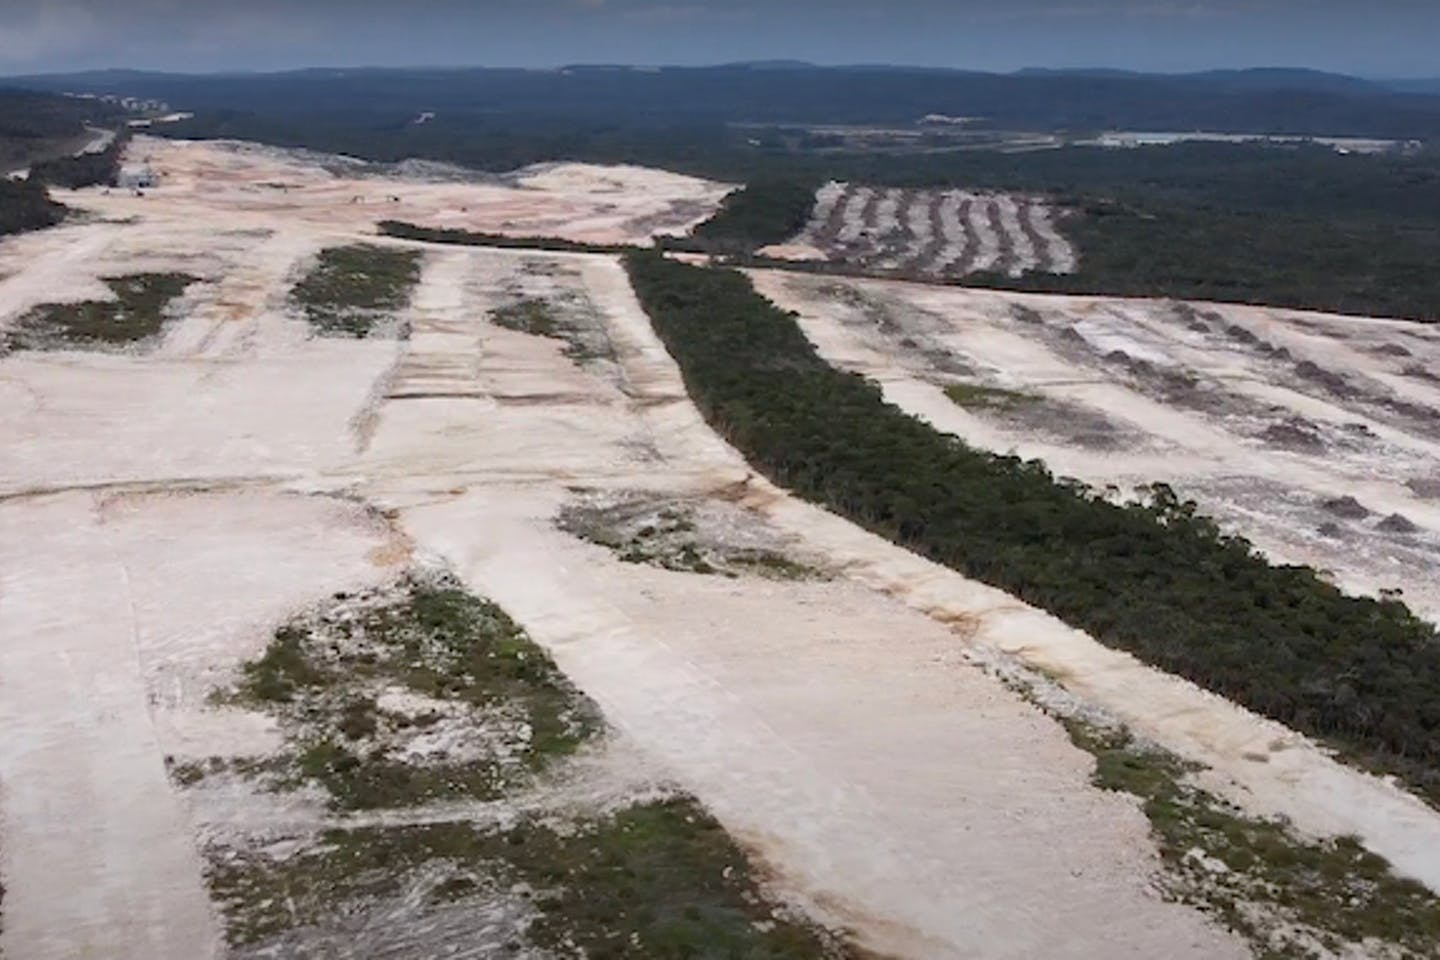 Drone image of alleged clearing for luxury residential estates in Bokor National Park.